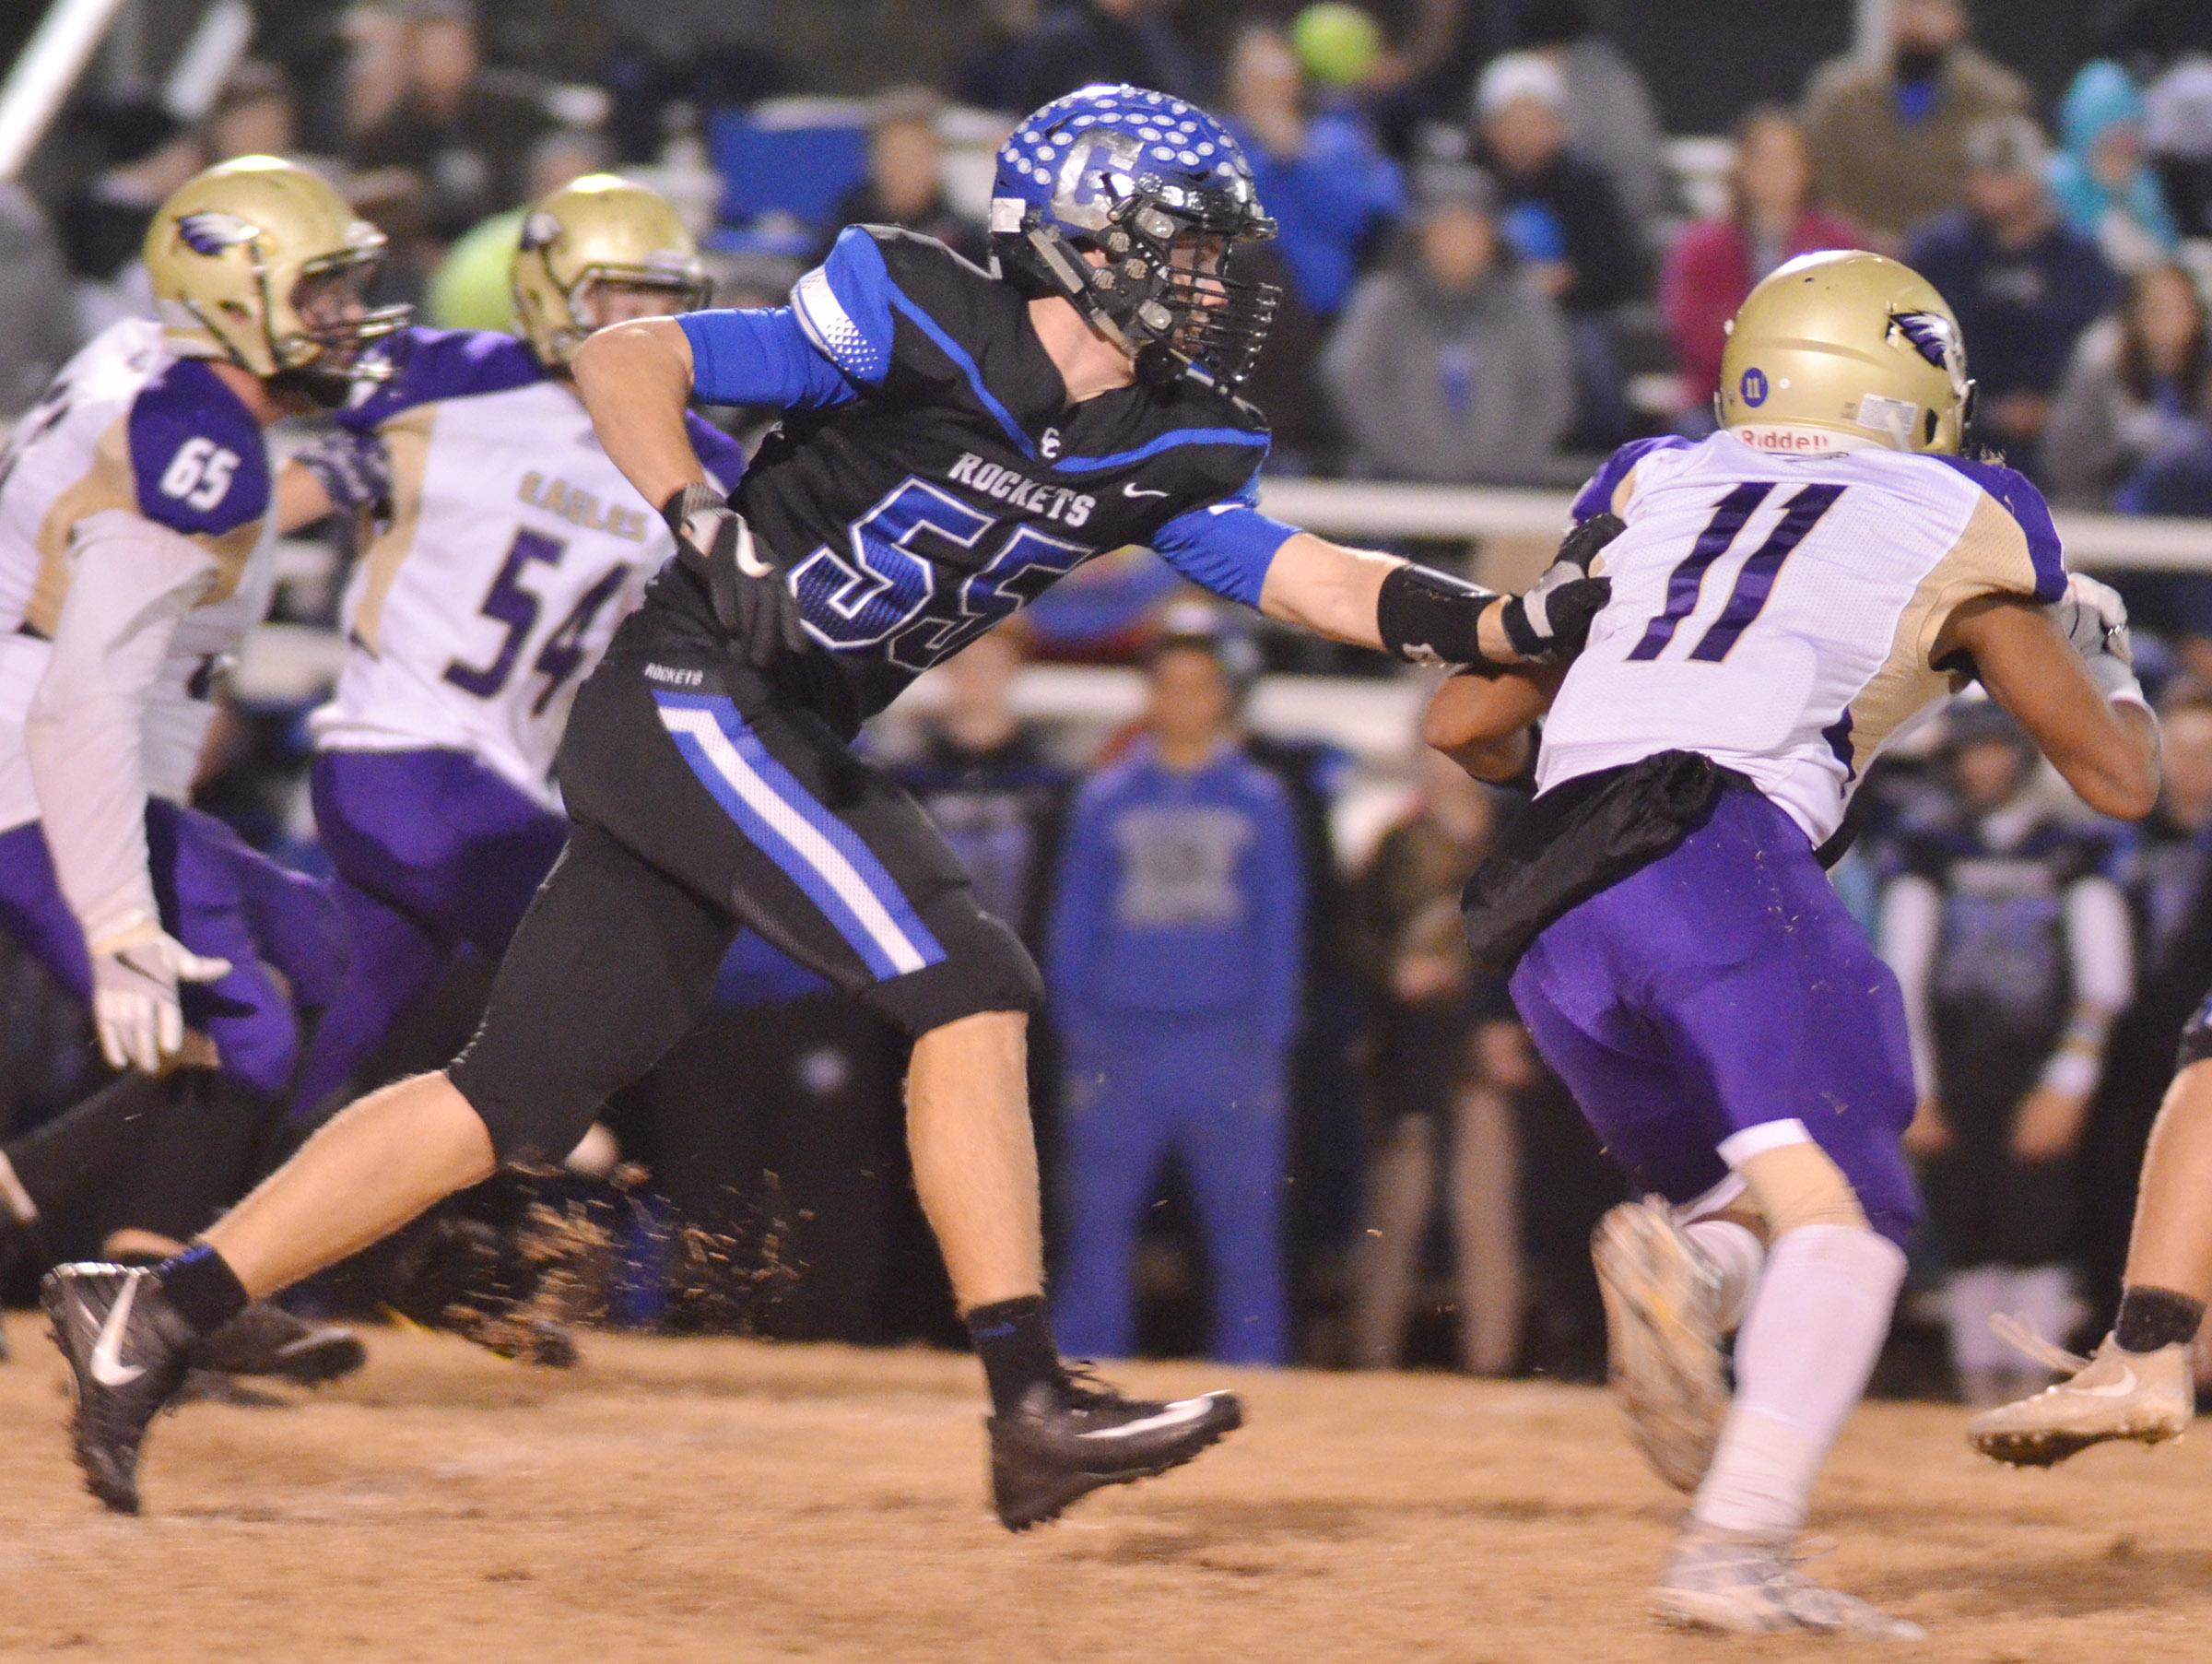 CHS sophomore Braden Paige runs from a Crittenden County defender.